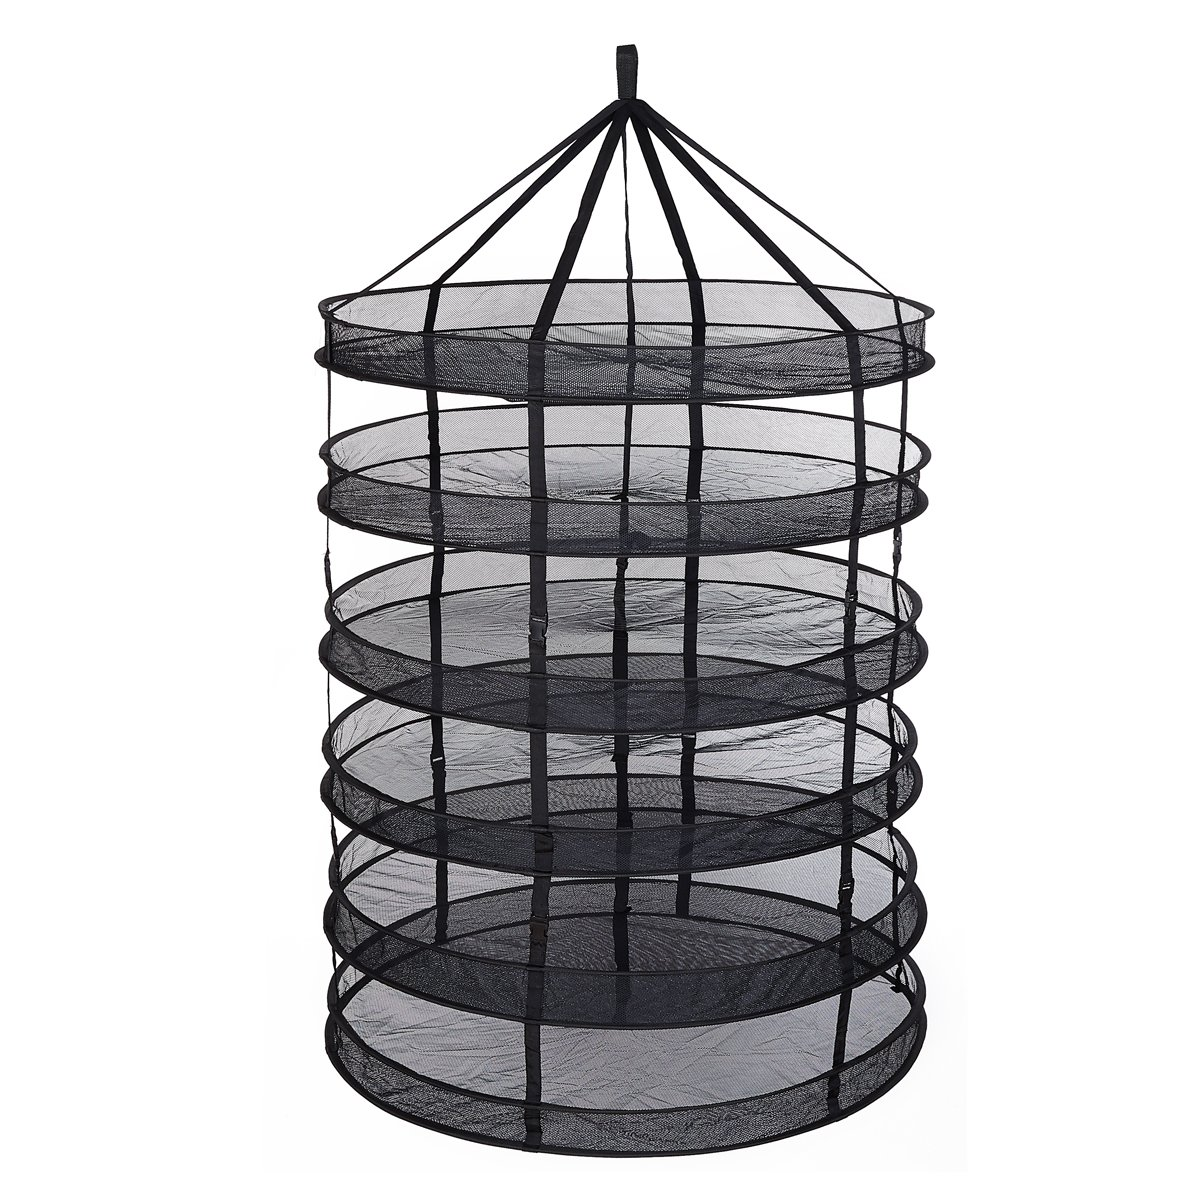 TopoGrow 6- Layer Black Mesh Hanging Herb Drying Rack Dry Net for Storage Drying Seeds (3FT 6-Layer) by TopoGrow